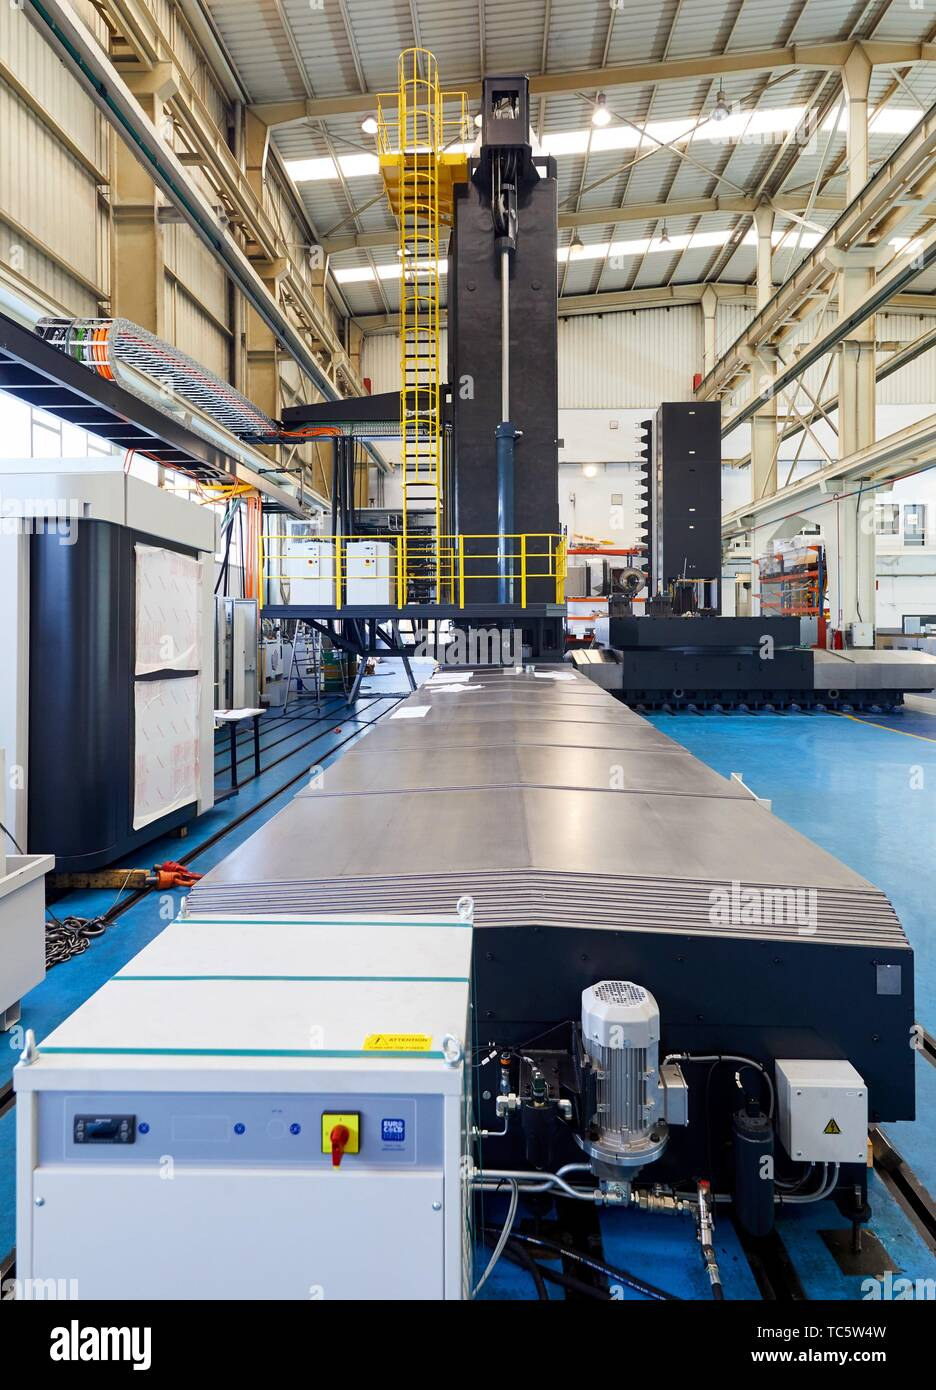 Lathe, Machining Center, CNC, Design, manufacture and installation of machine tools, Gipuzkoa, Basque Country, Spain, Europe - Stock Image